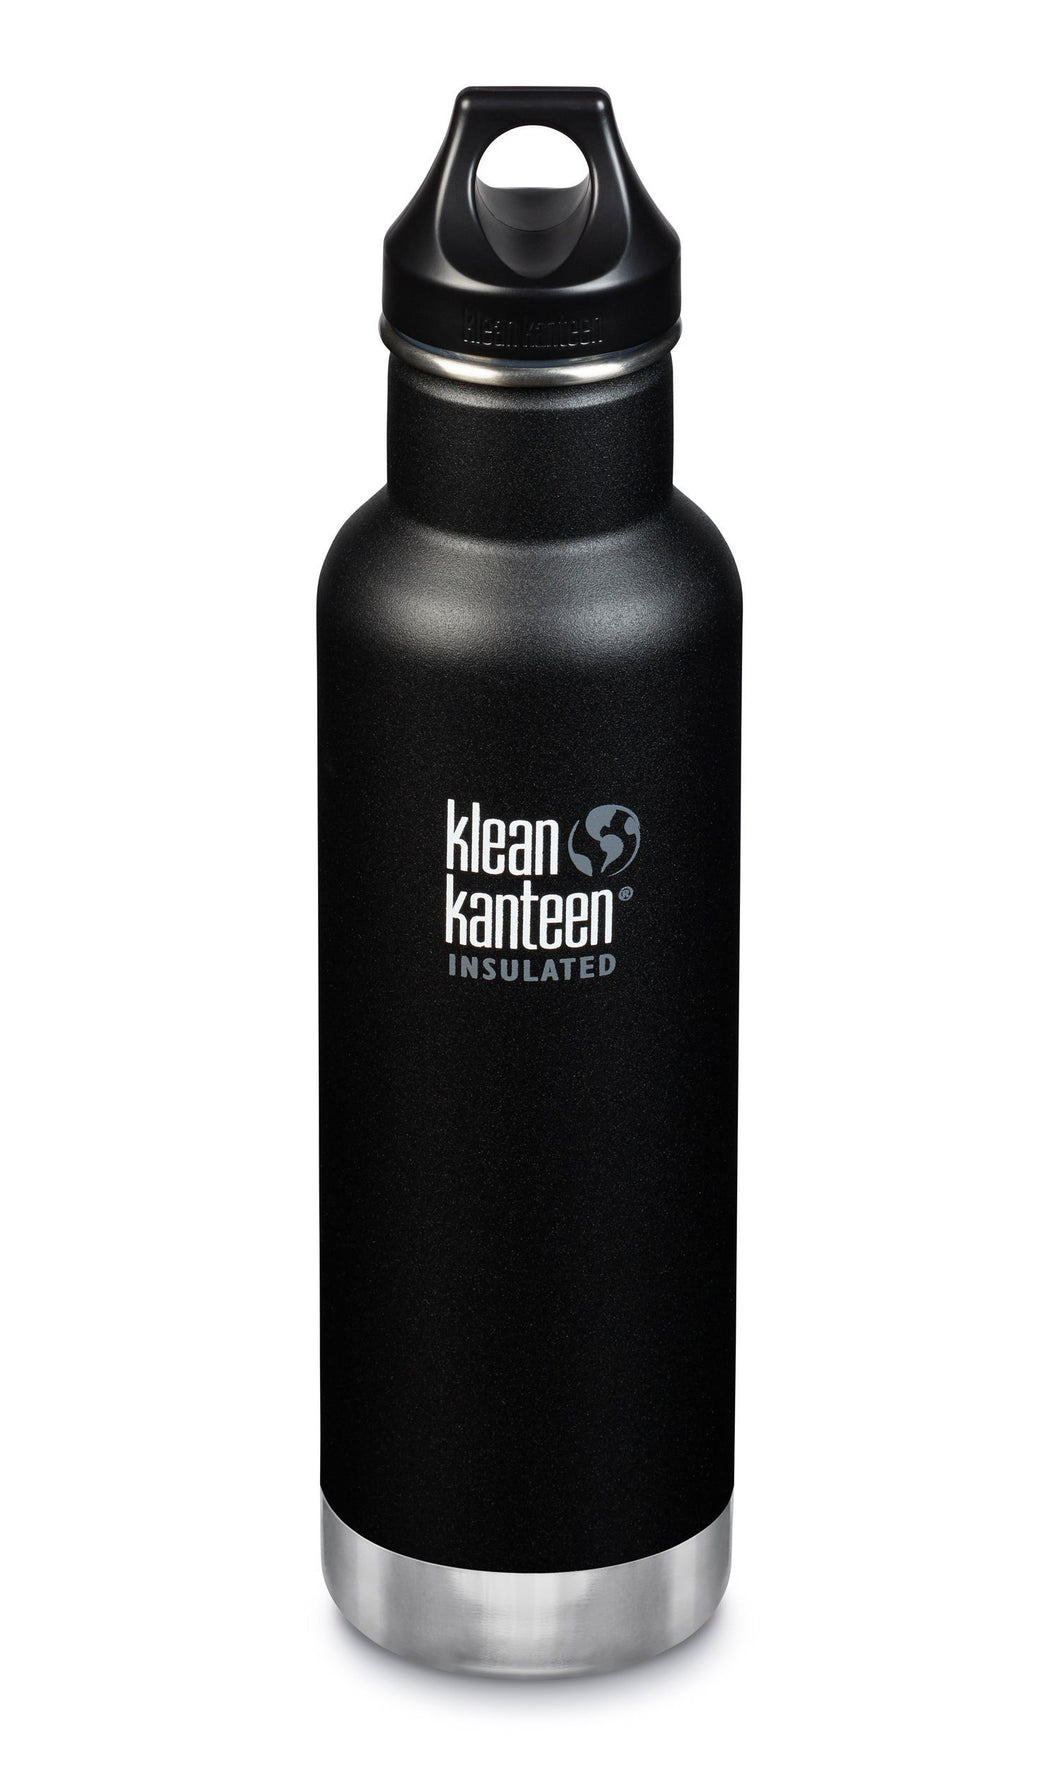 Matte green insulated bottle with a stainless steel base and a black plastic lid.